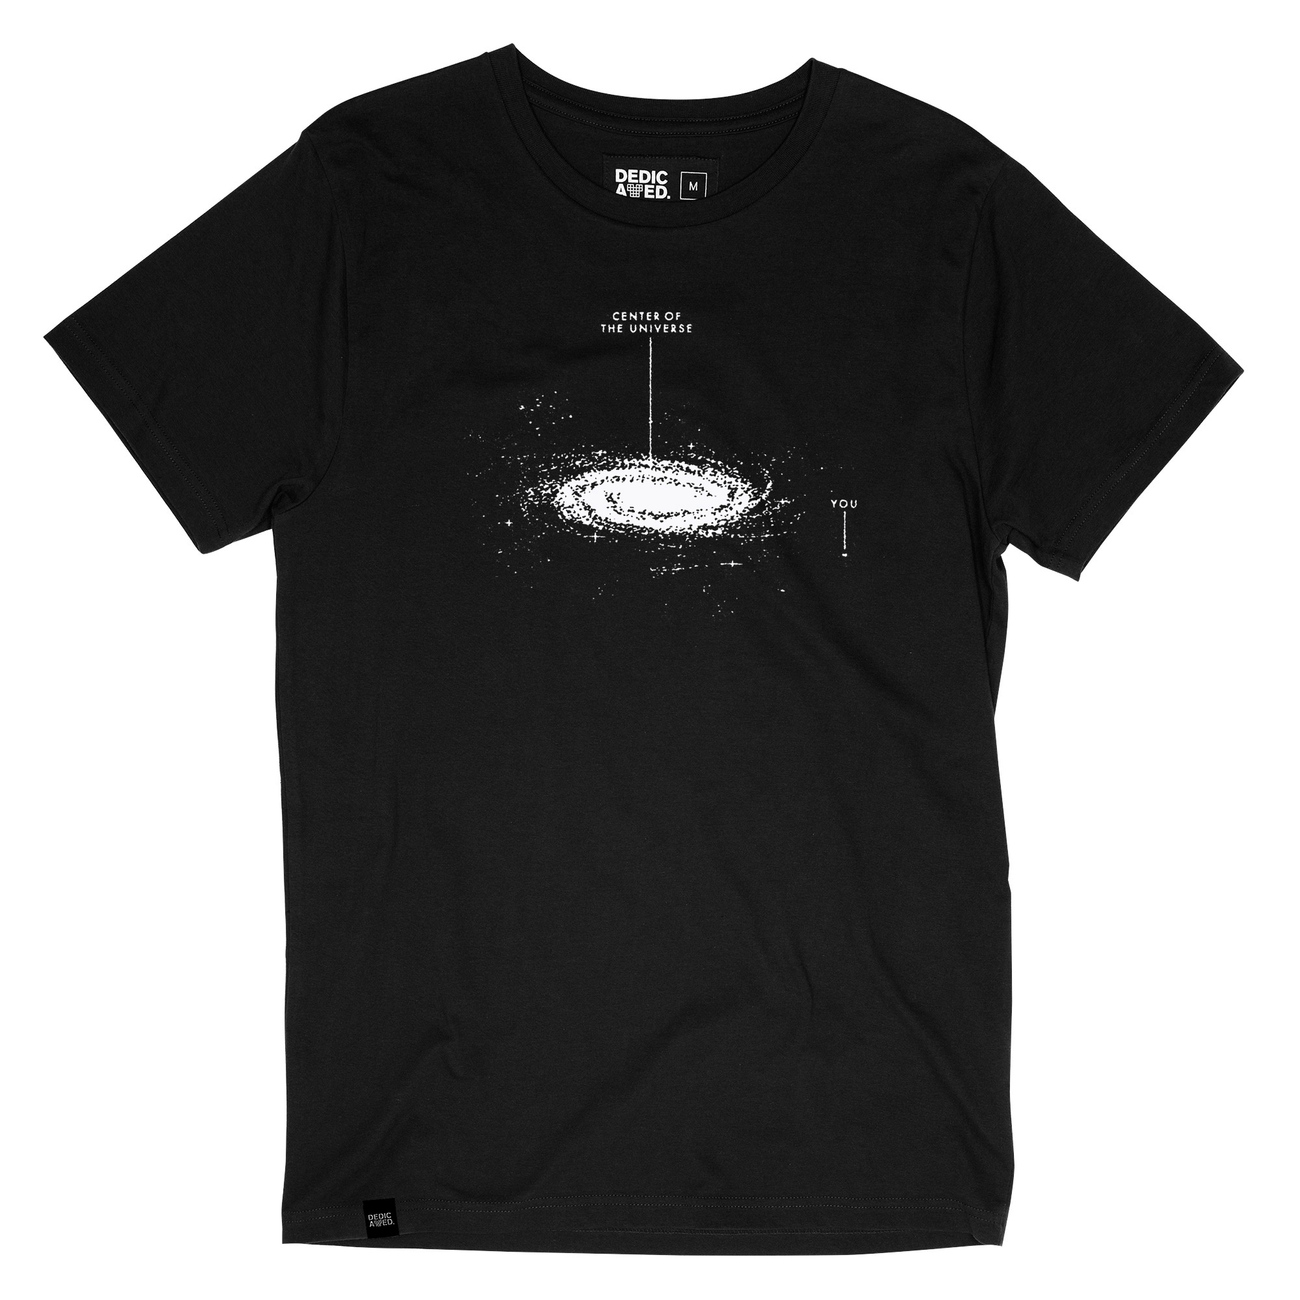 T-shirt Stockholm Universe and You